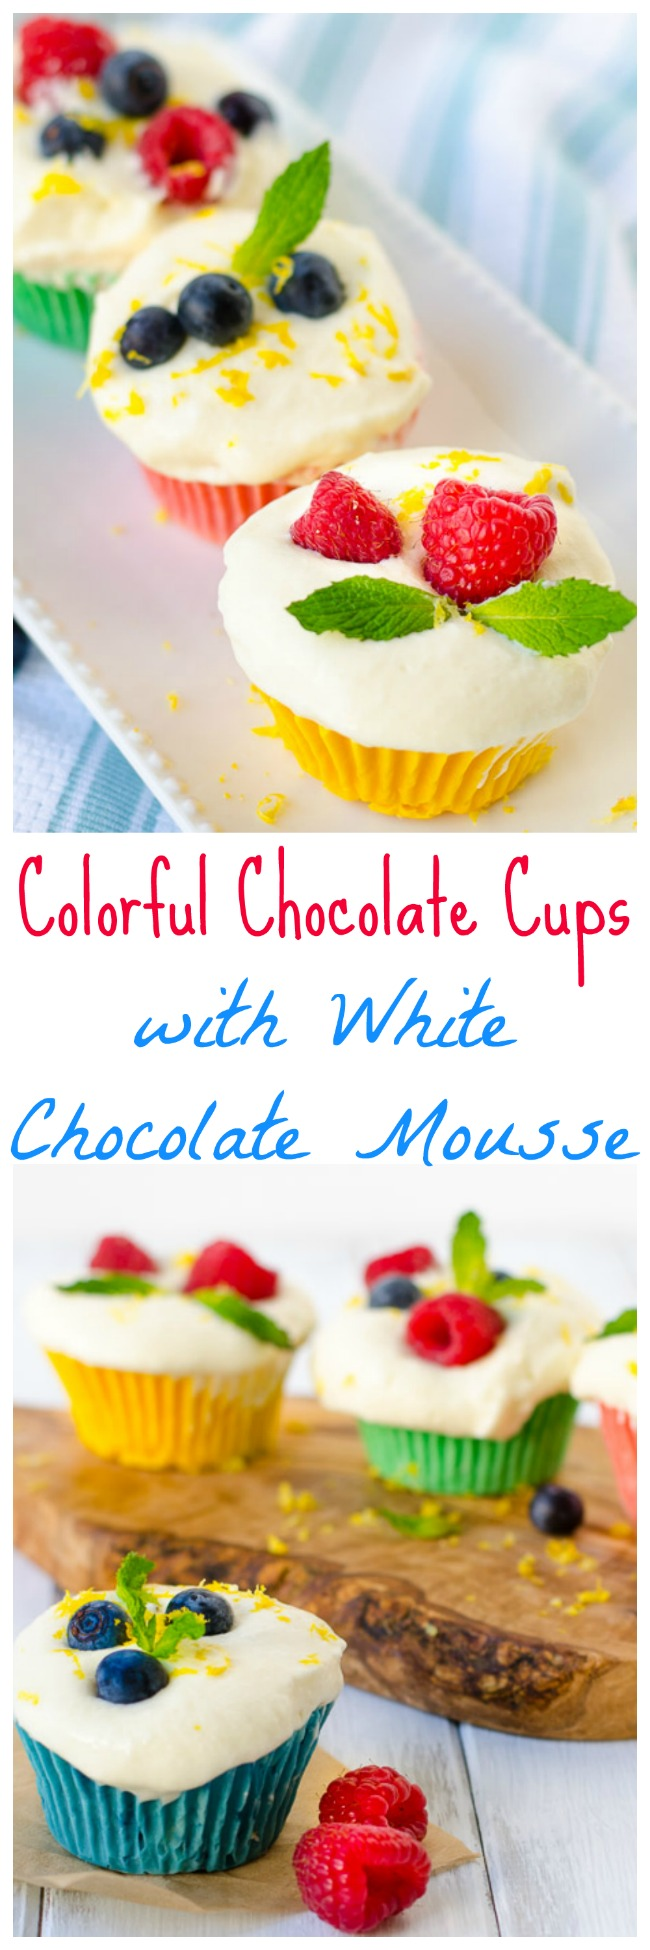 Colorful Chocolate Cups with White Chocolate Mouse